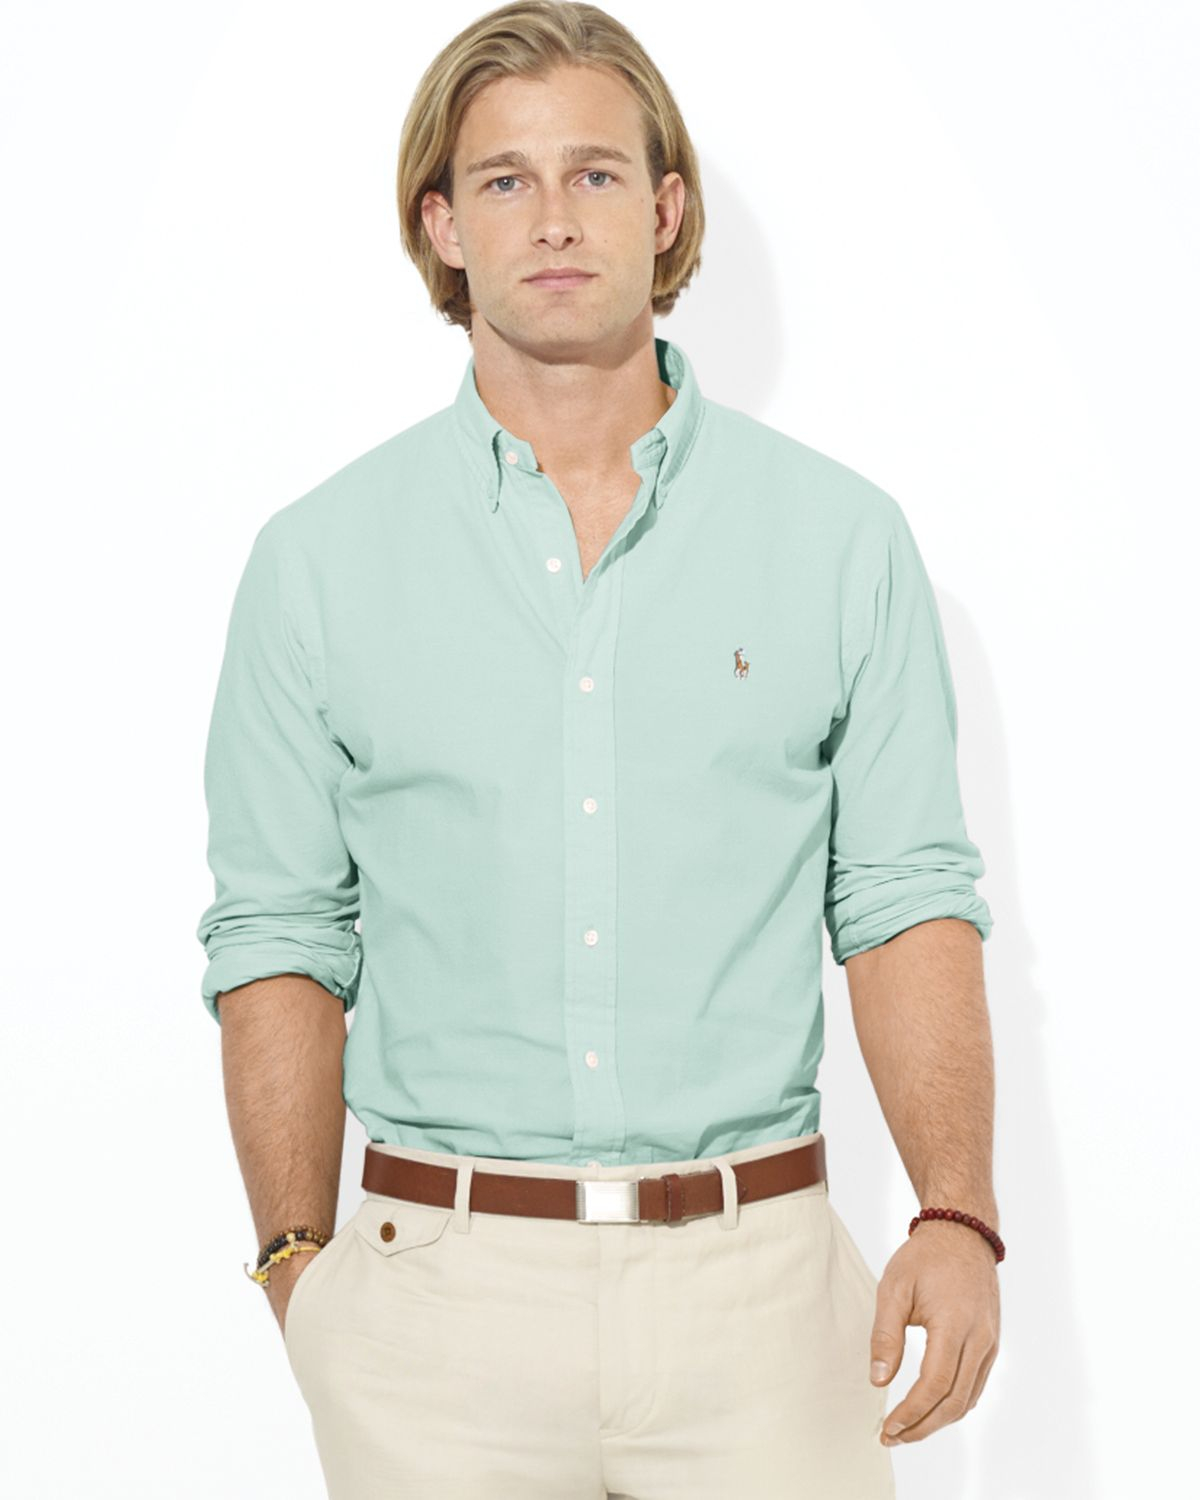 Mint Green Shirt For Men | Is Shirt